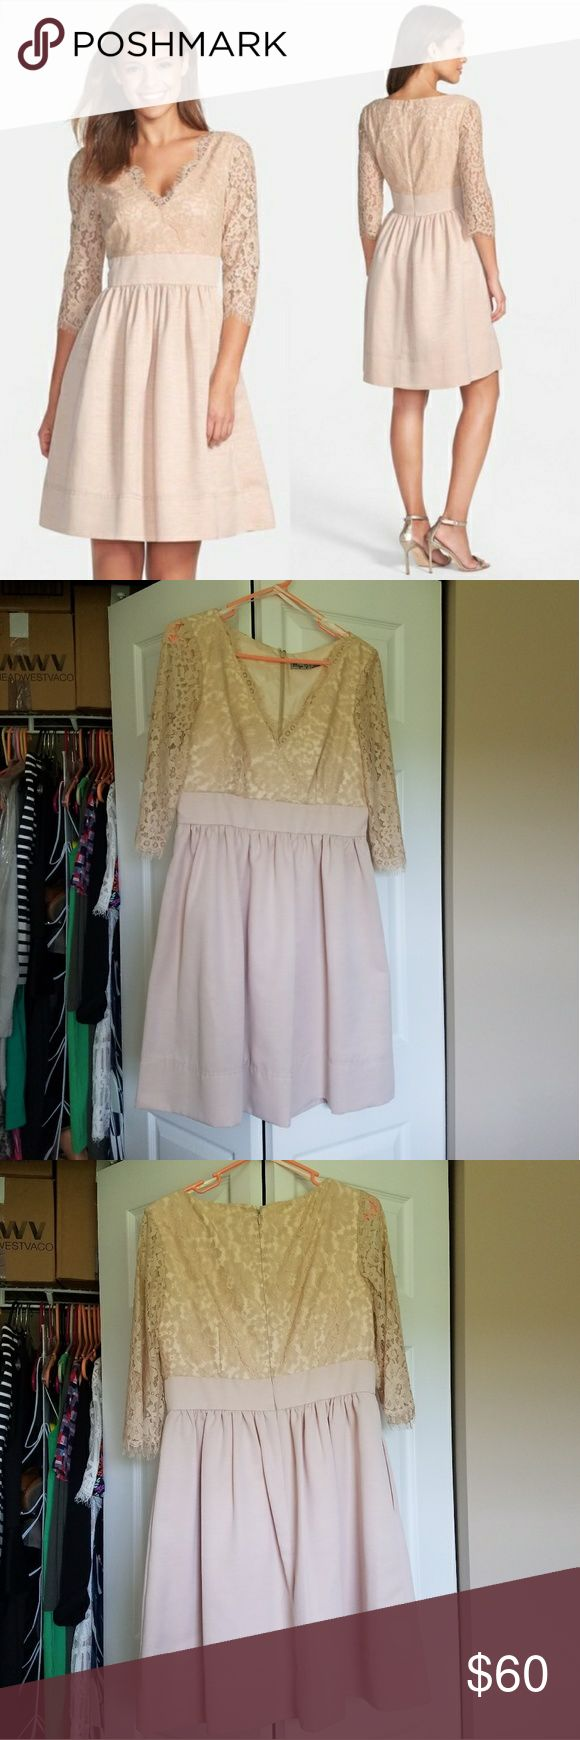 Eliza J Lace and Faille Nude Cocktail Dress Gorgrous! EUC worn only once for a few hours and in perfect condition! Nude Lace cocktail dress by Eliza J from Nordstrom. Sleeves are lace and opaque lace bodice with pleated skirt. Zips up the back. Size 10 Eliza J Dresses